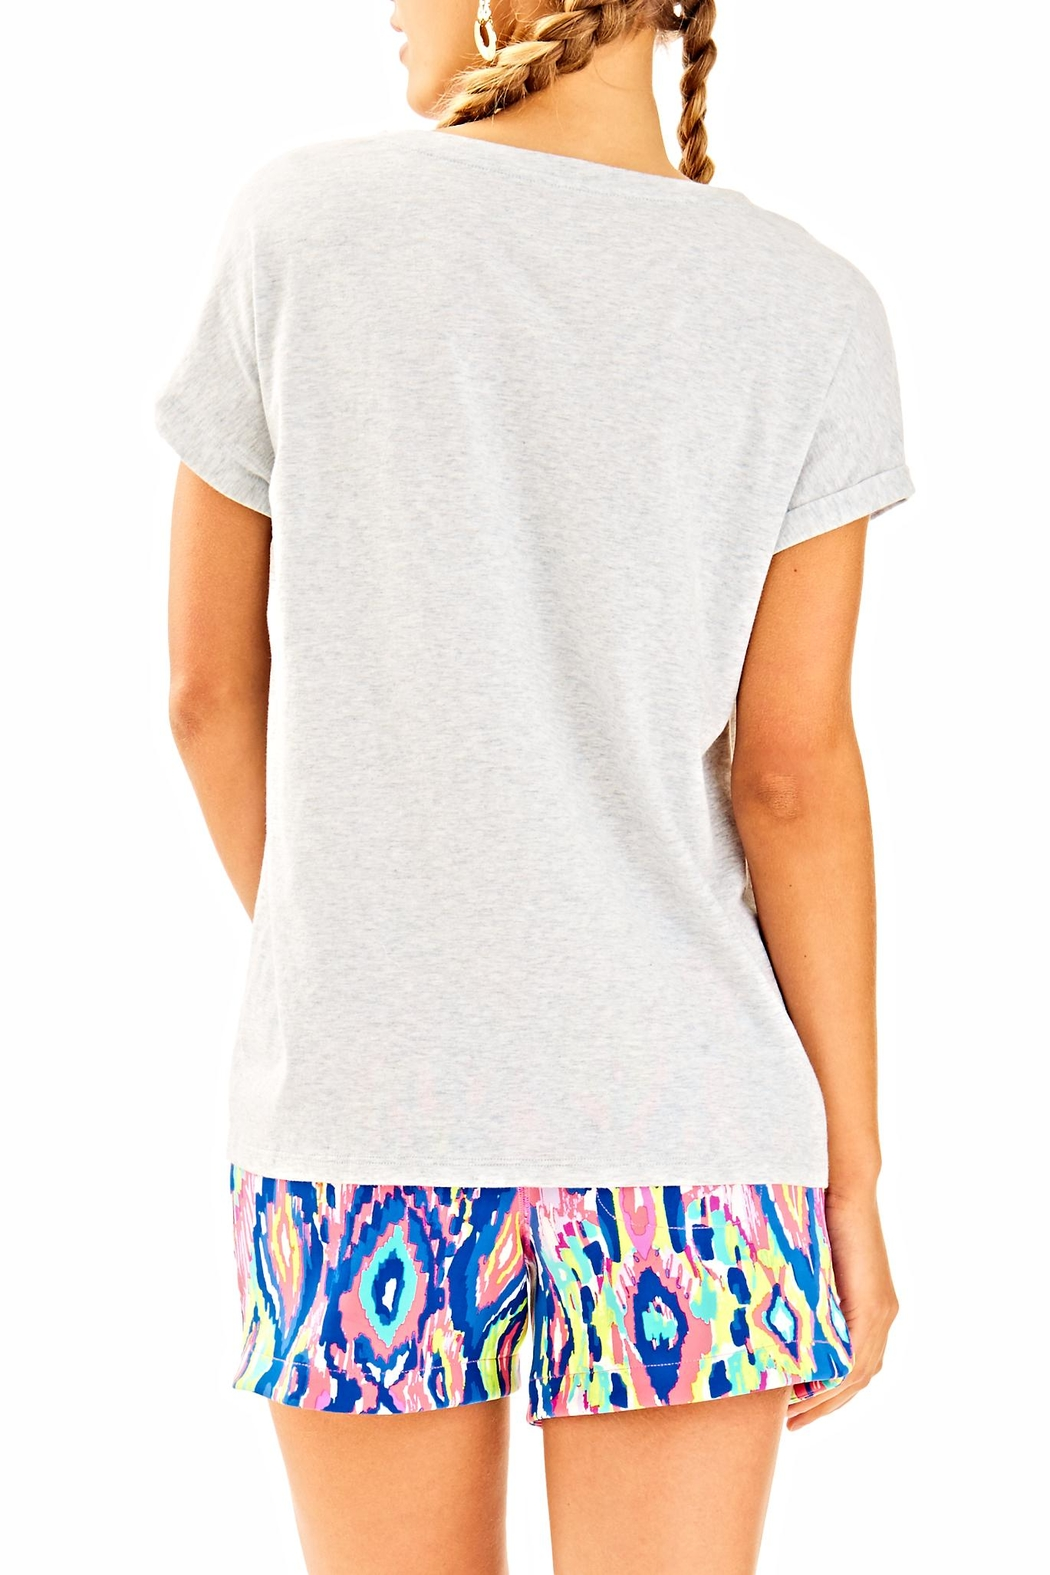 Lilly Pulitzer Daley Tee - Front Full Image